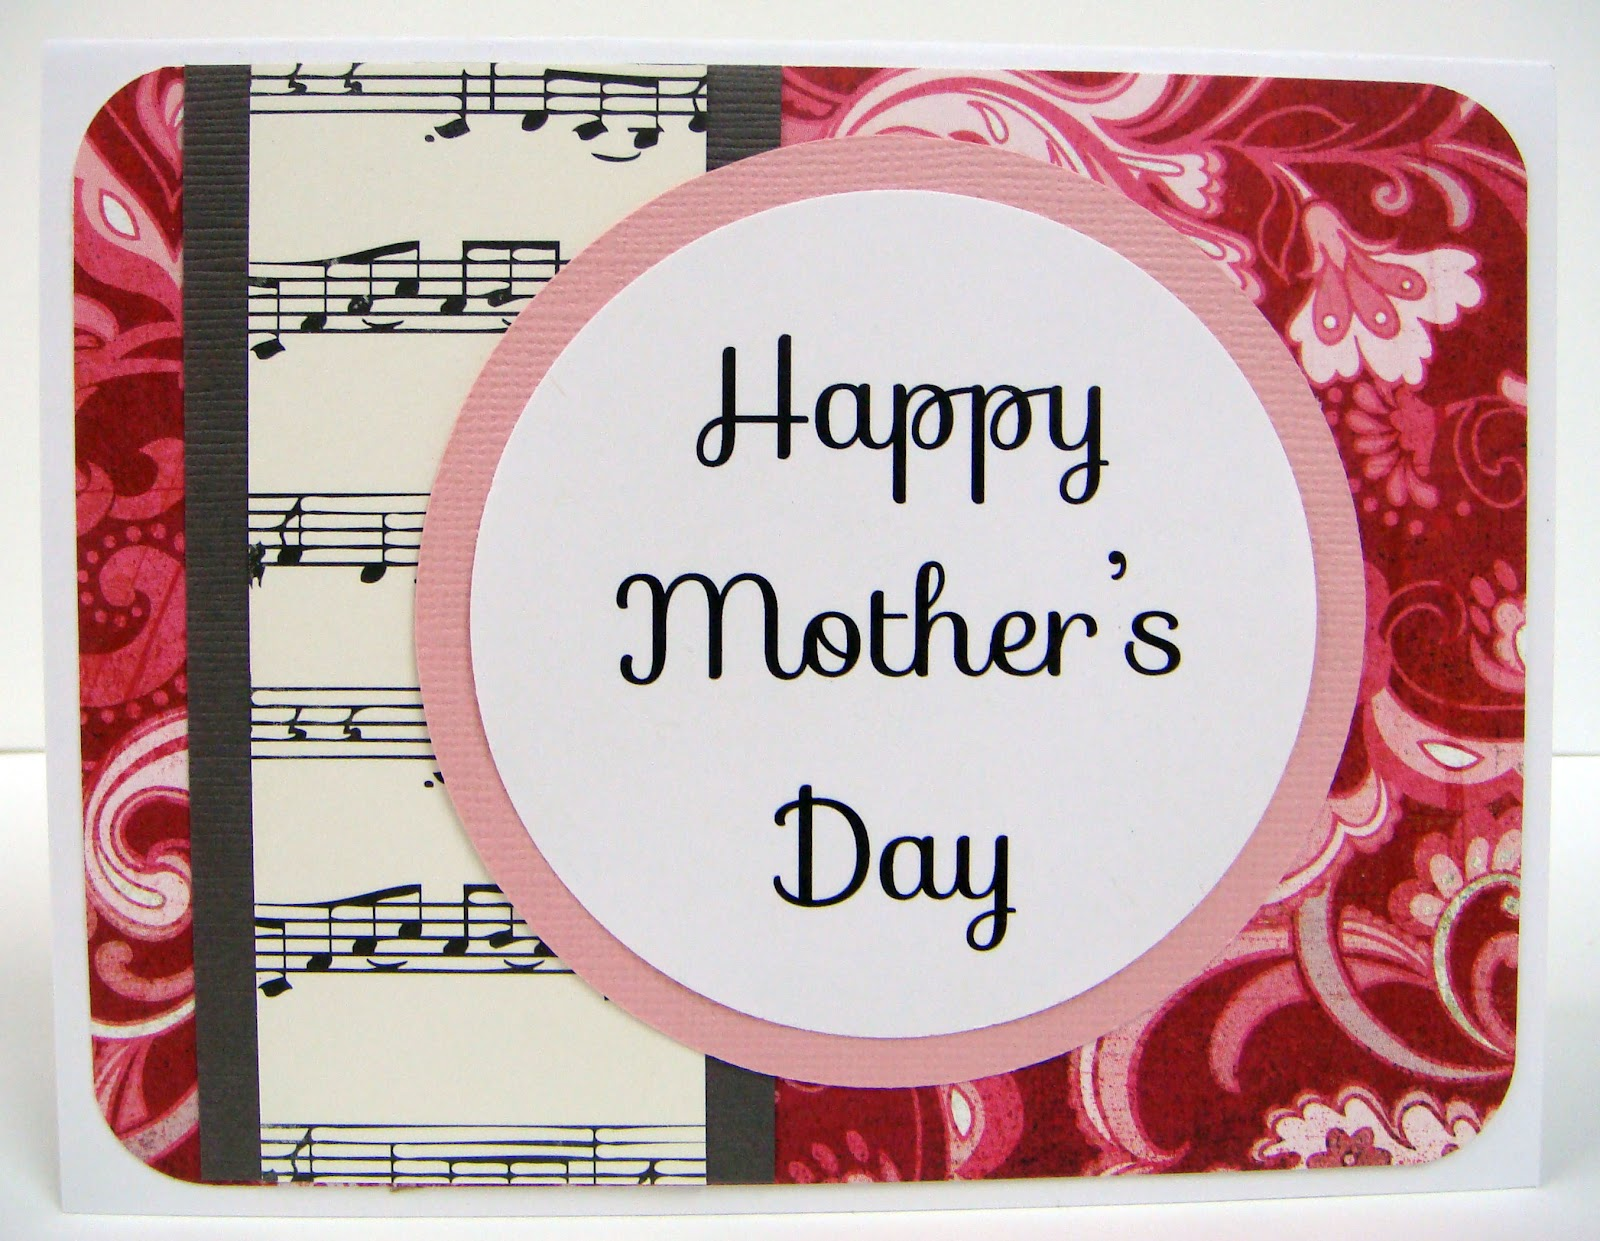 mothers day cards 2013 love and wishes cards mothers day 2013